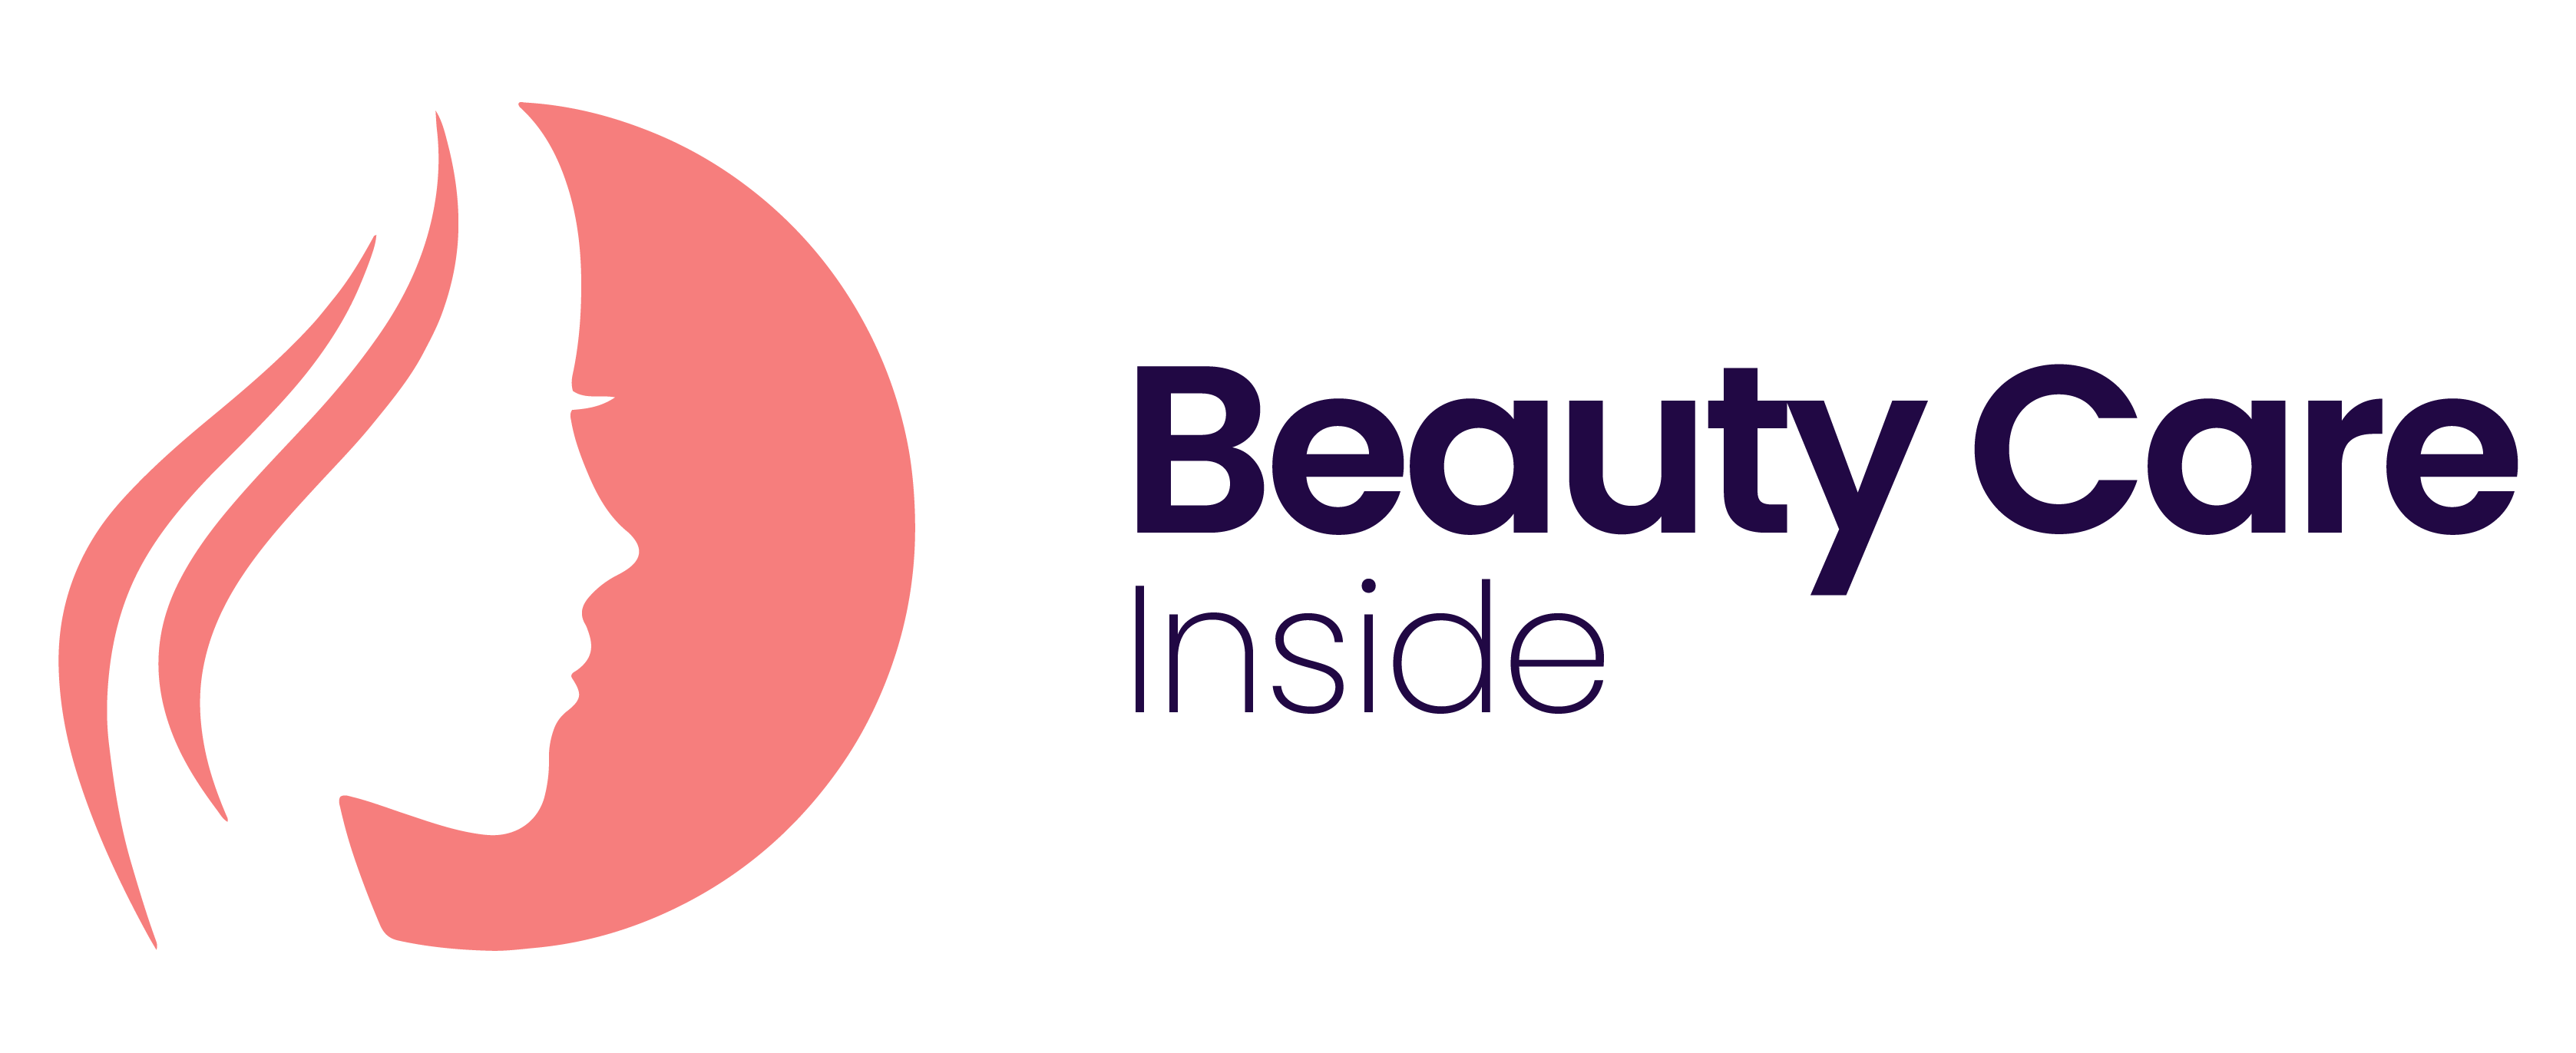 Beauty Care Inside